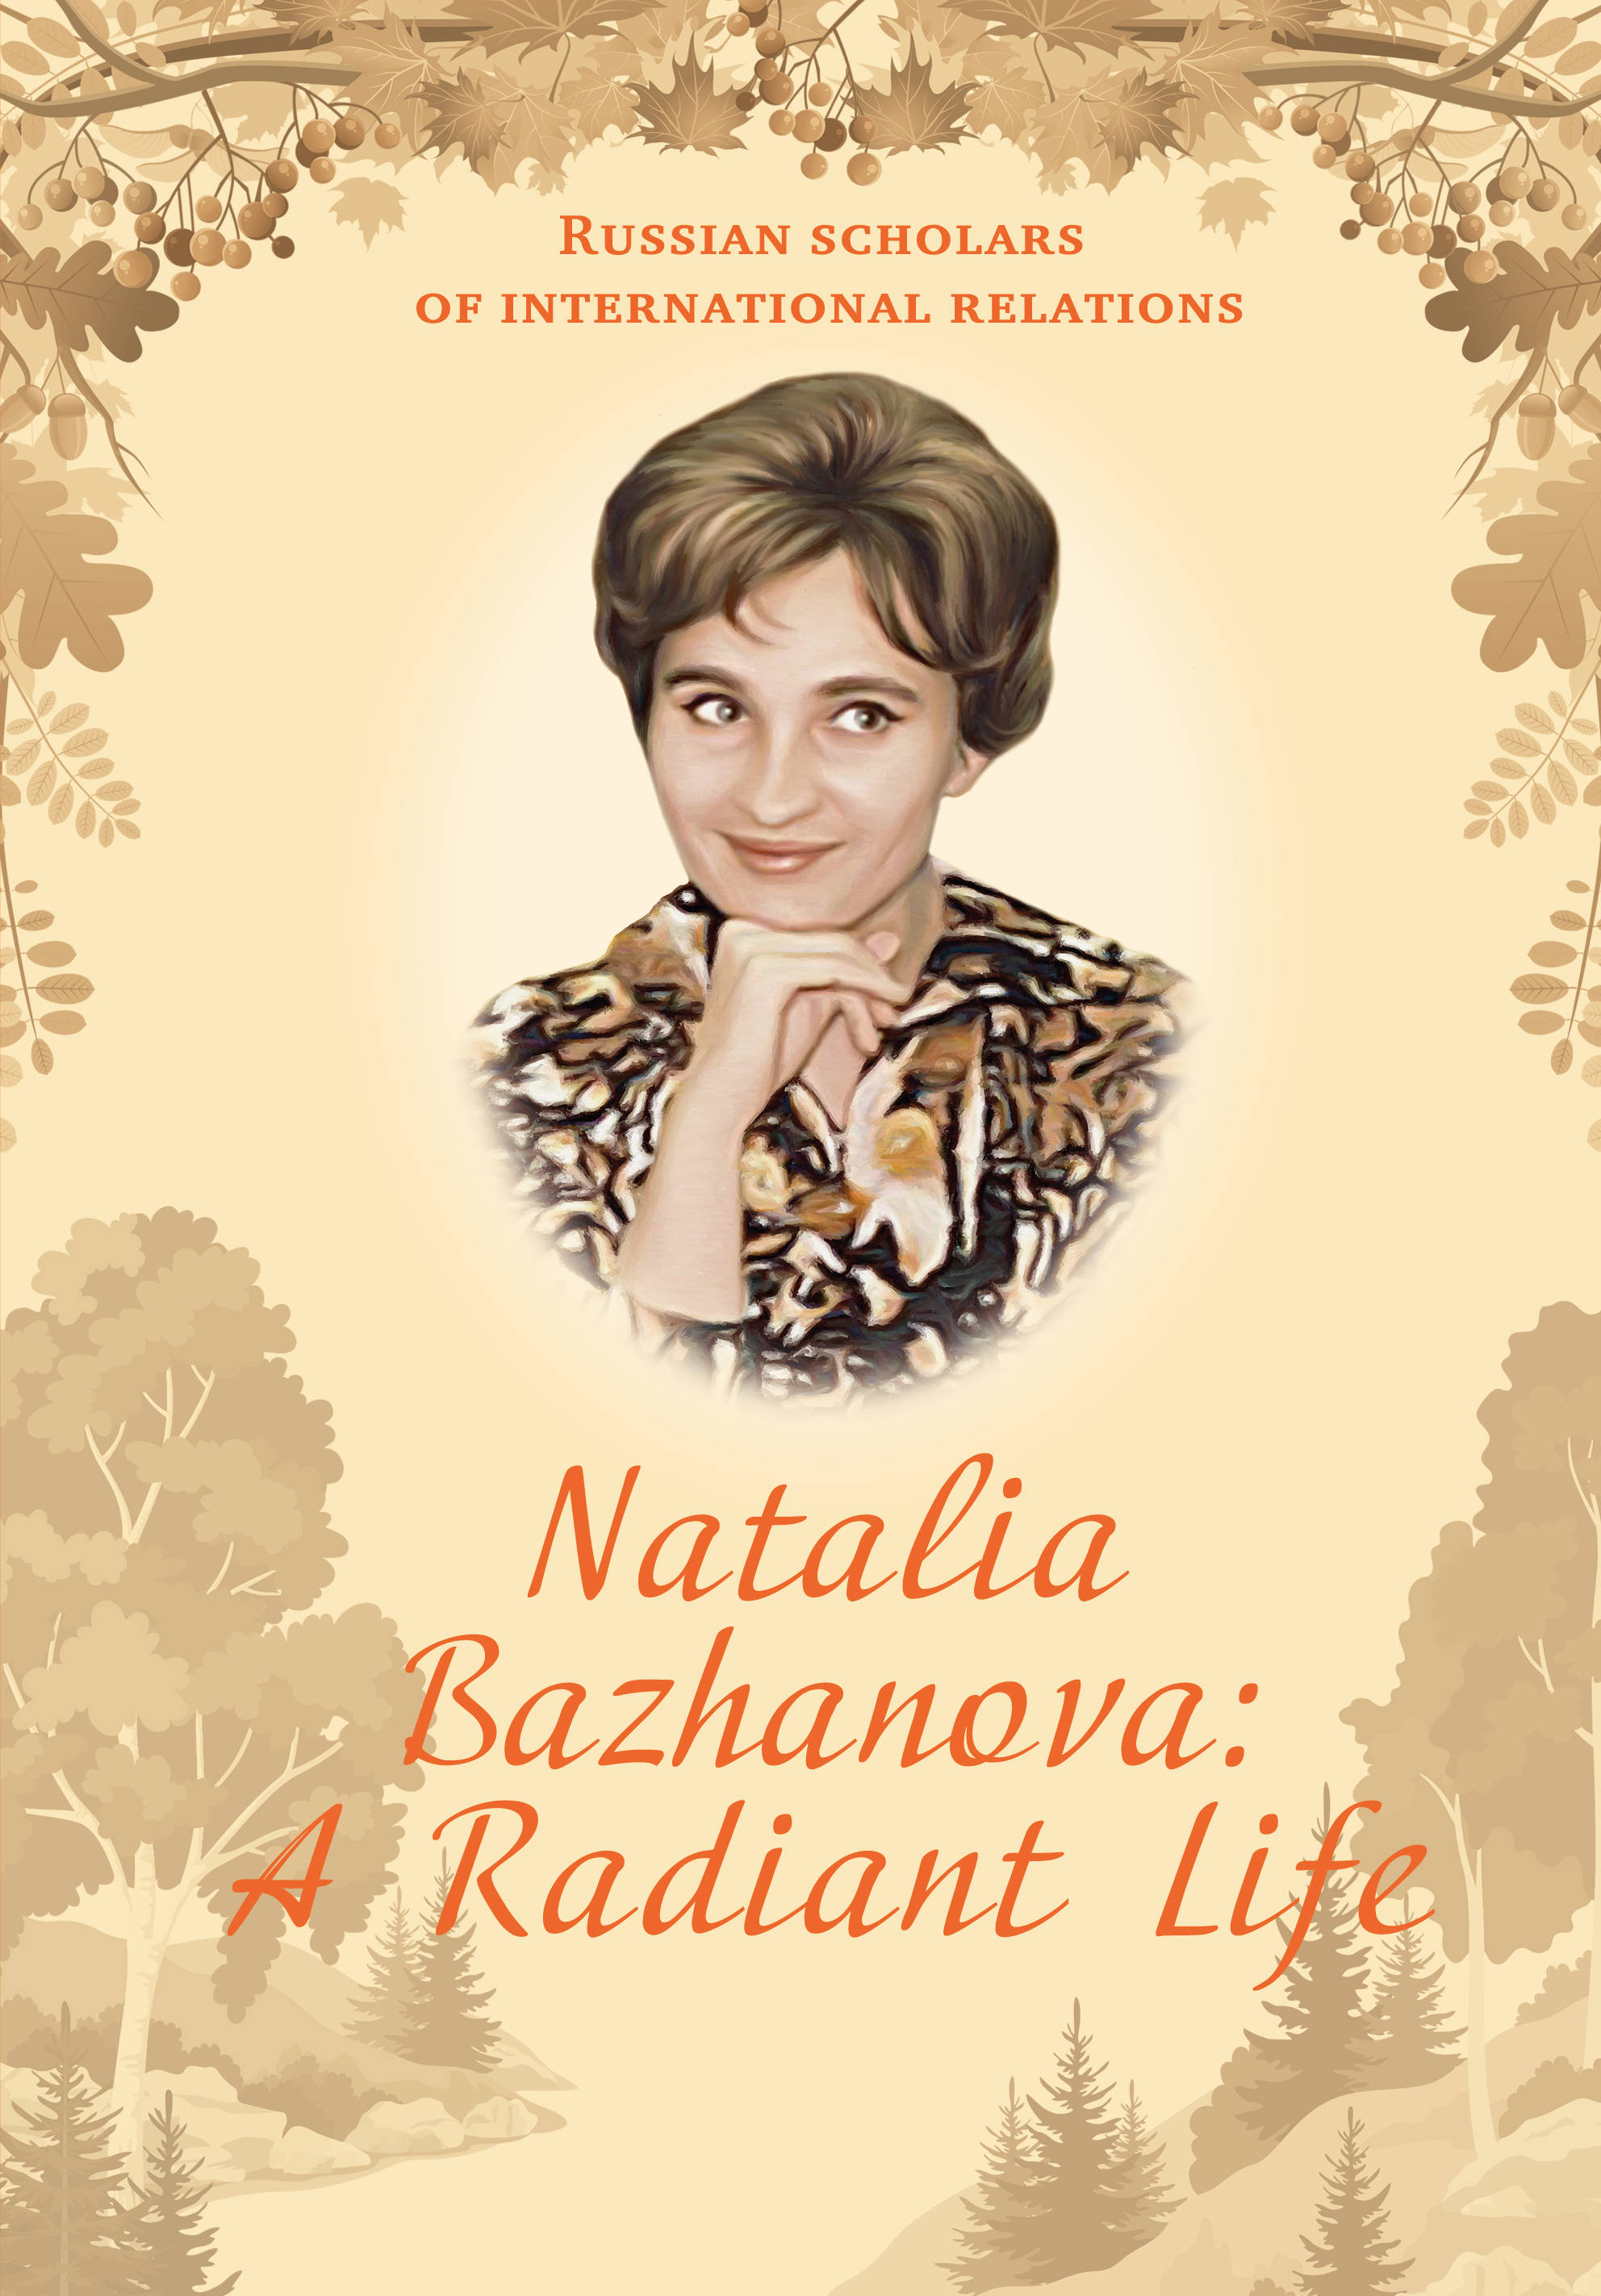 Natalia Bazhanova: A Radiant Life max klim russian maniacs of the 21st century rare names and detailed events